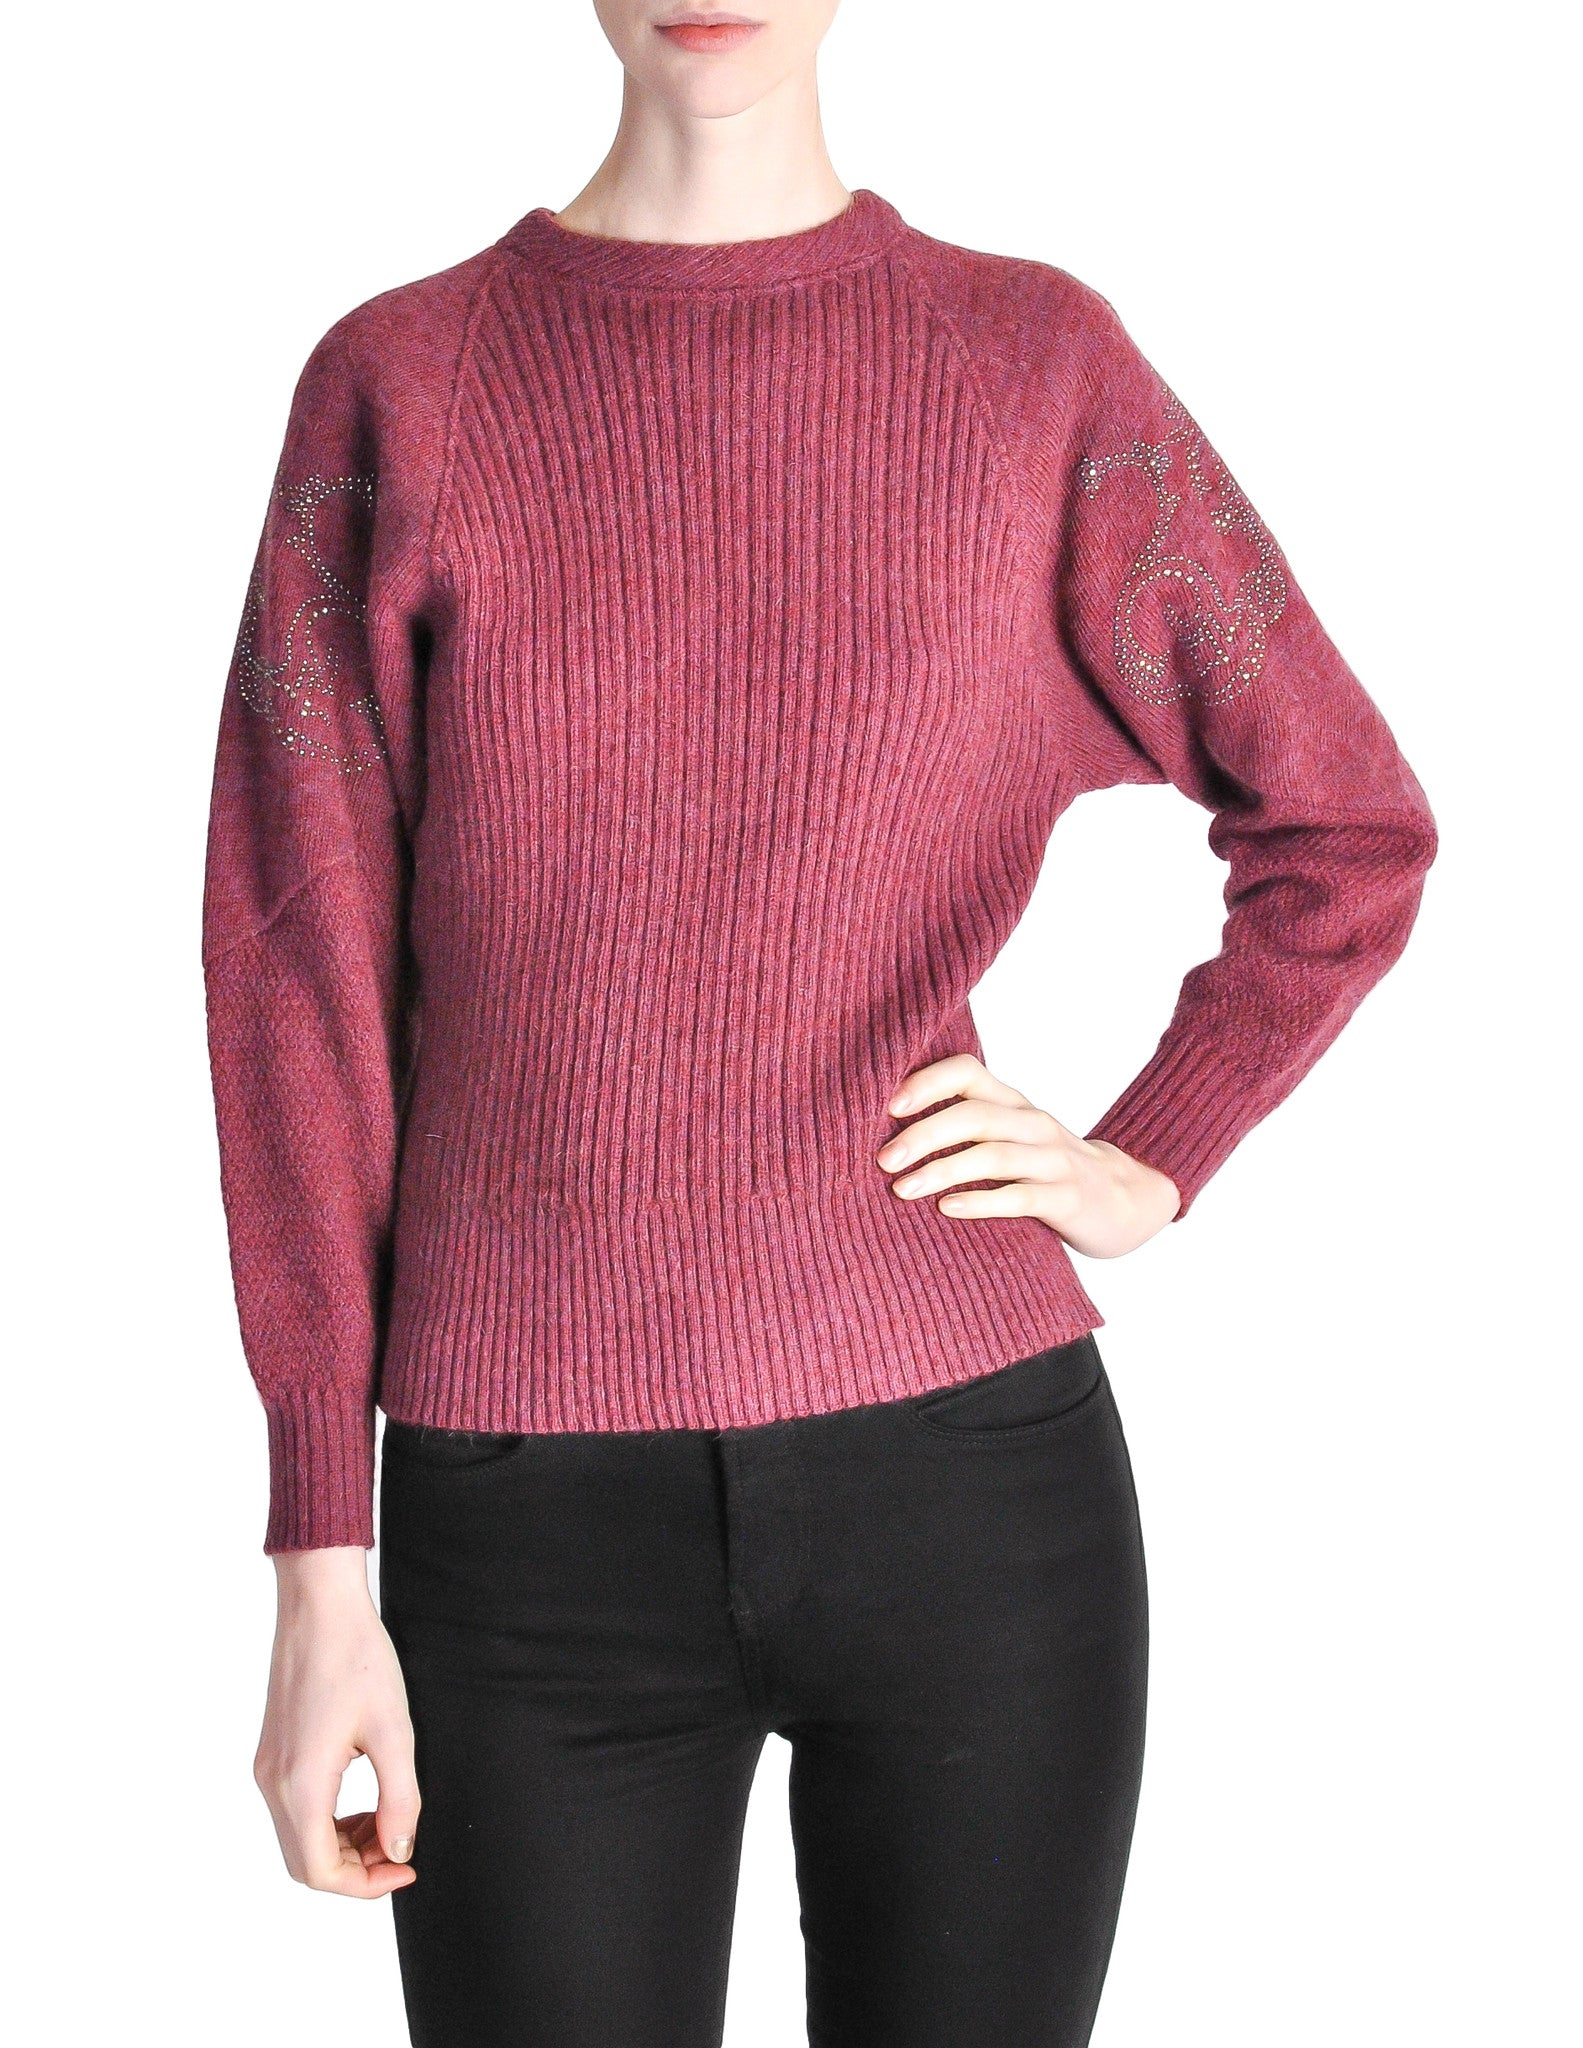 Versace Vintage Purple Sweater with Studded Sleeves - Amarcord Vintage Fashion  - 1